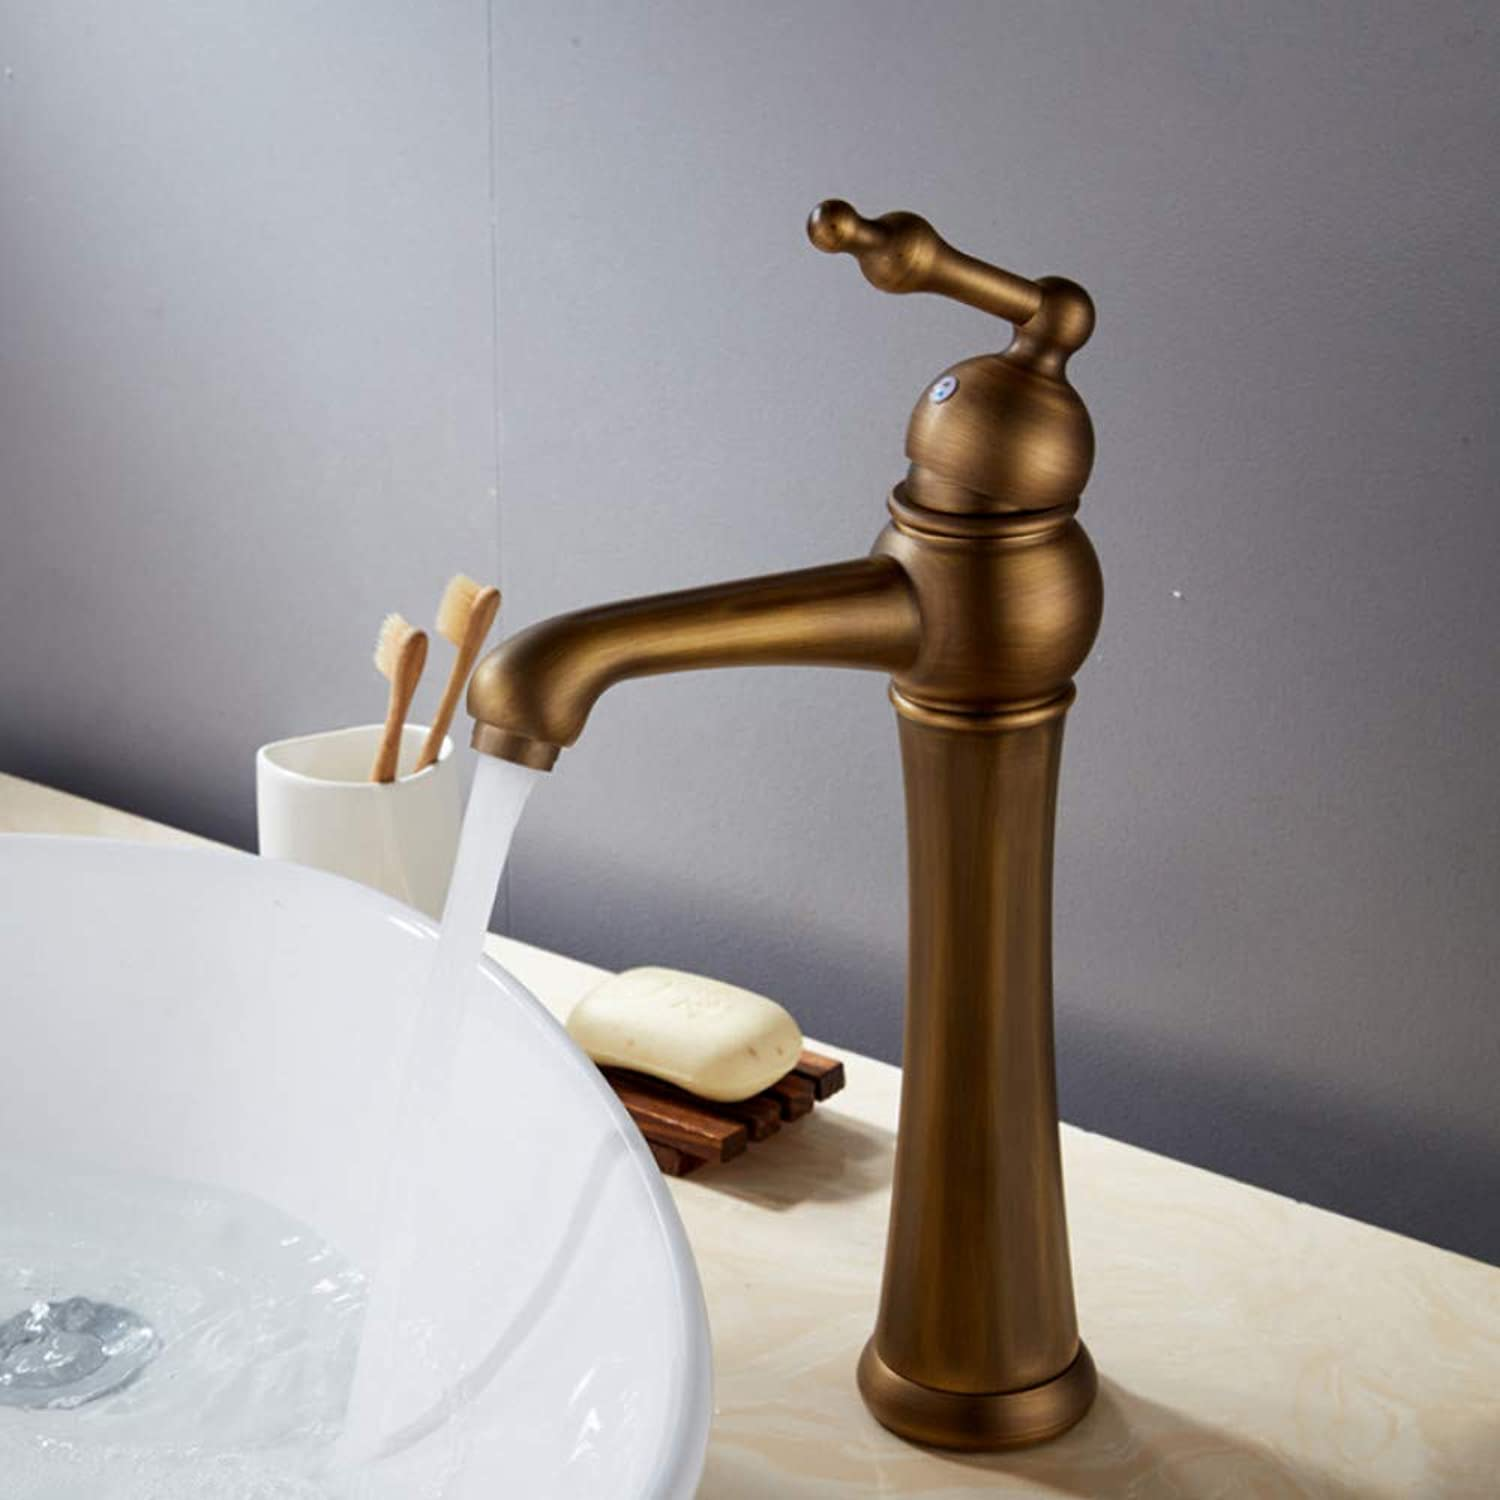 Lddpl Tap Basin Faucets Antique??Bathroom Basin Mixer Tap Brass Hot and Cold Faucet Vintage Single Hole Taps